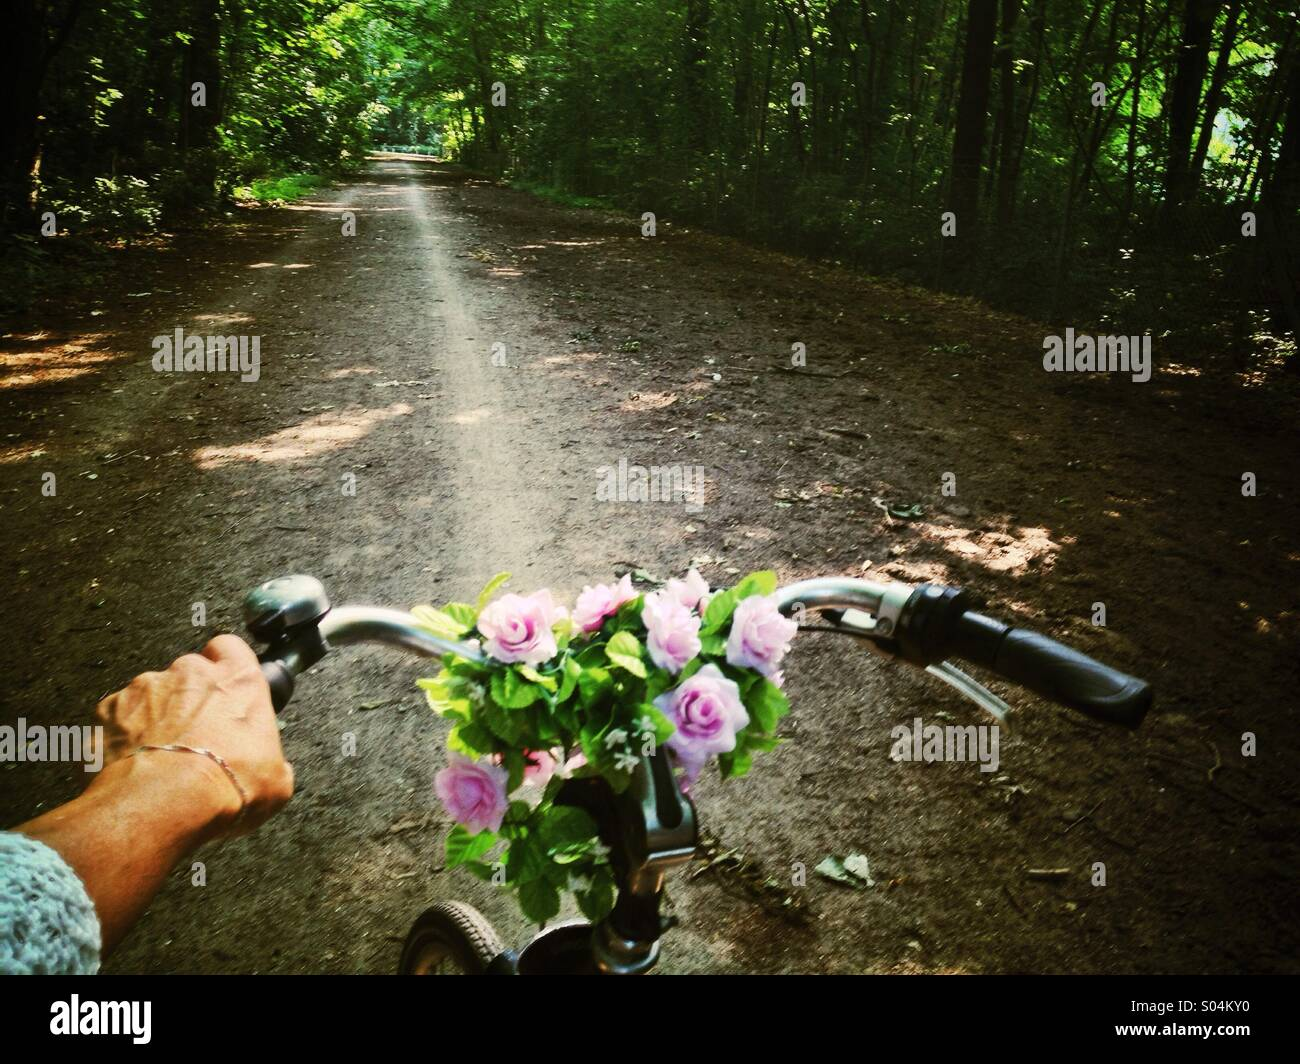 Cycling through the park, close up of woman's hand holding bicycle handlebar, view of Lane through woods, sun - Stock Image